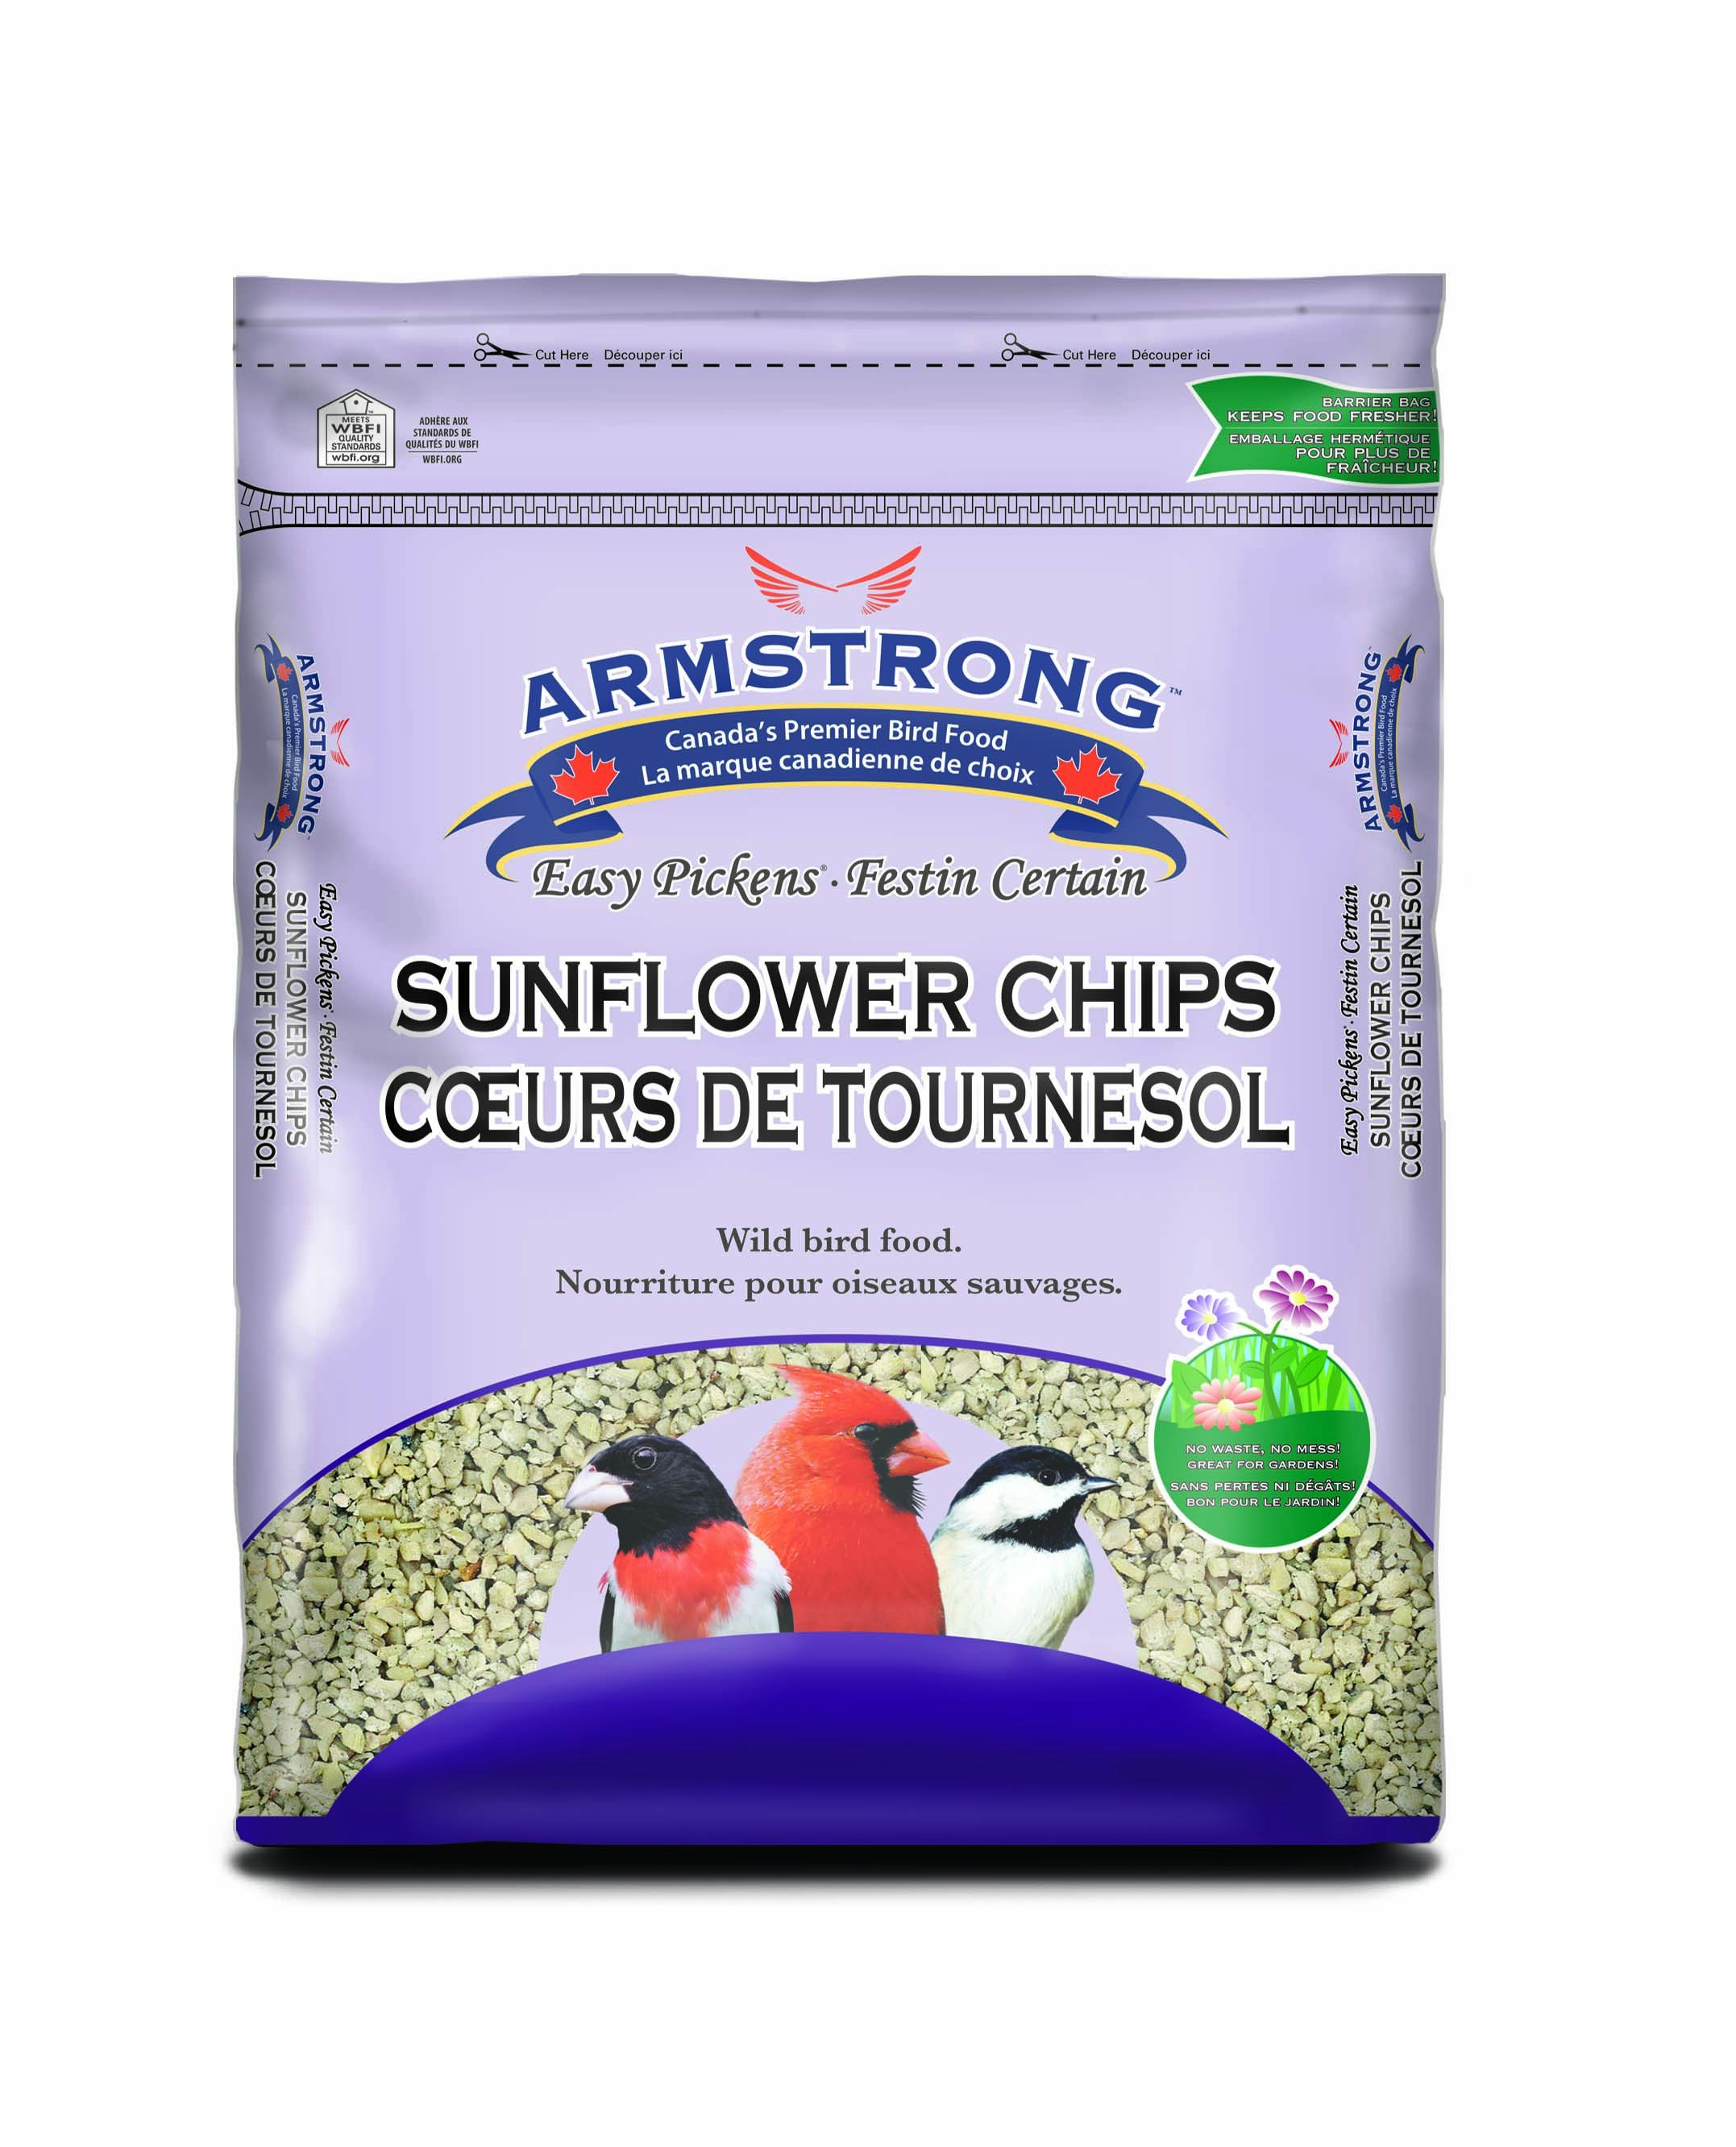 Armstrong Easy Pickens Sunflower Chips Wild Bird Food Image